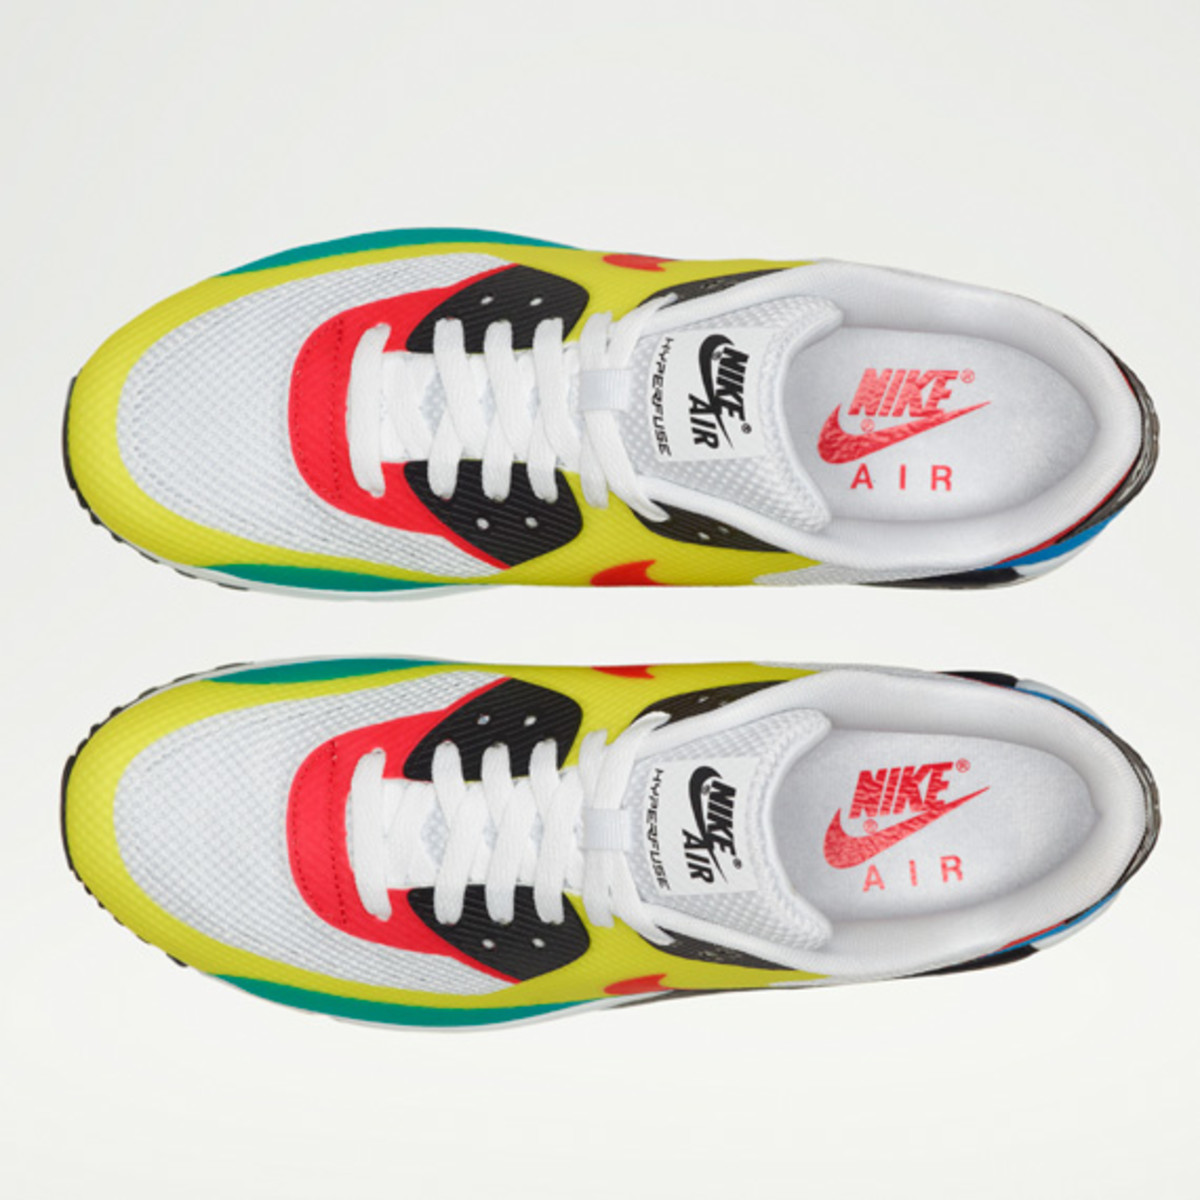 nike-sportswear-what-the-max-pack-12